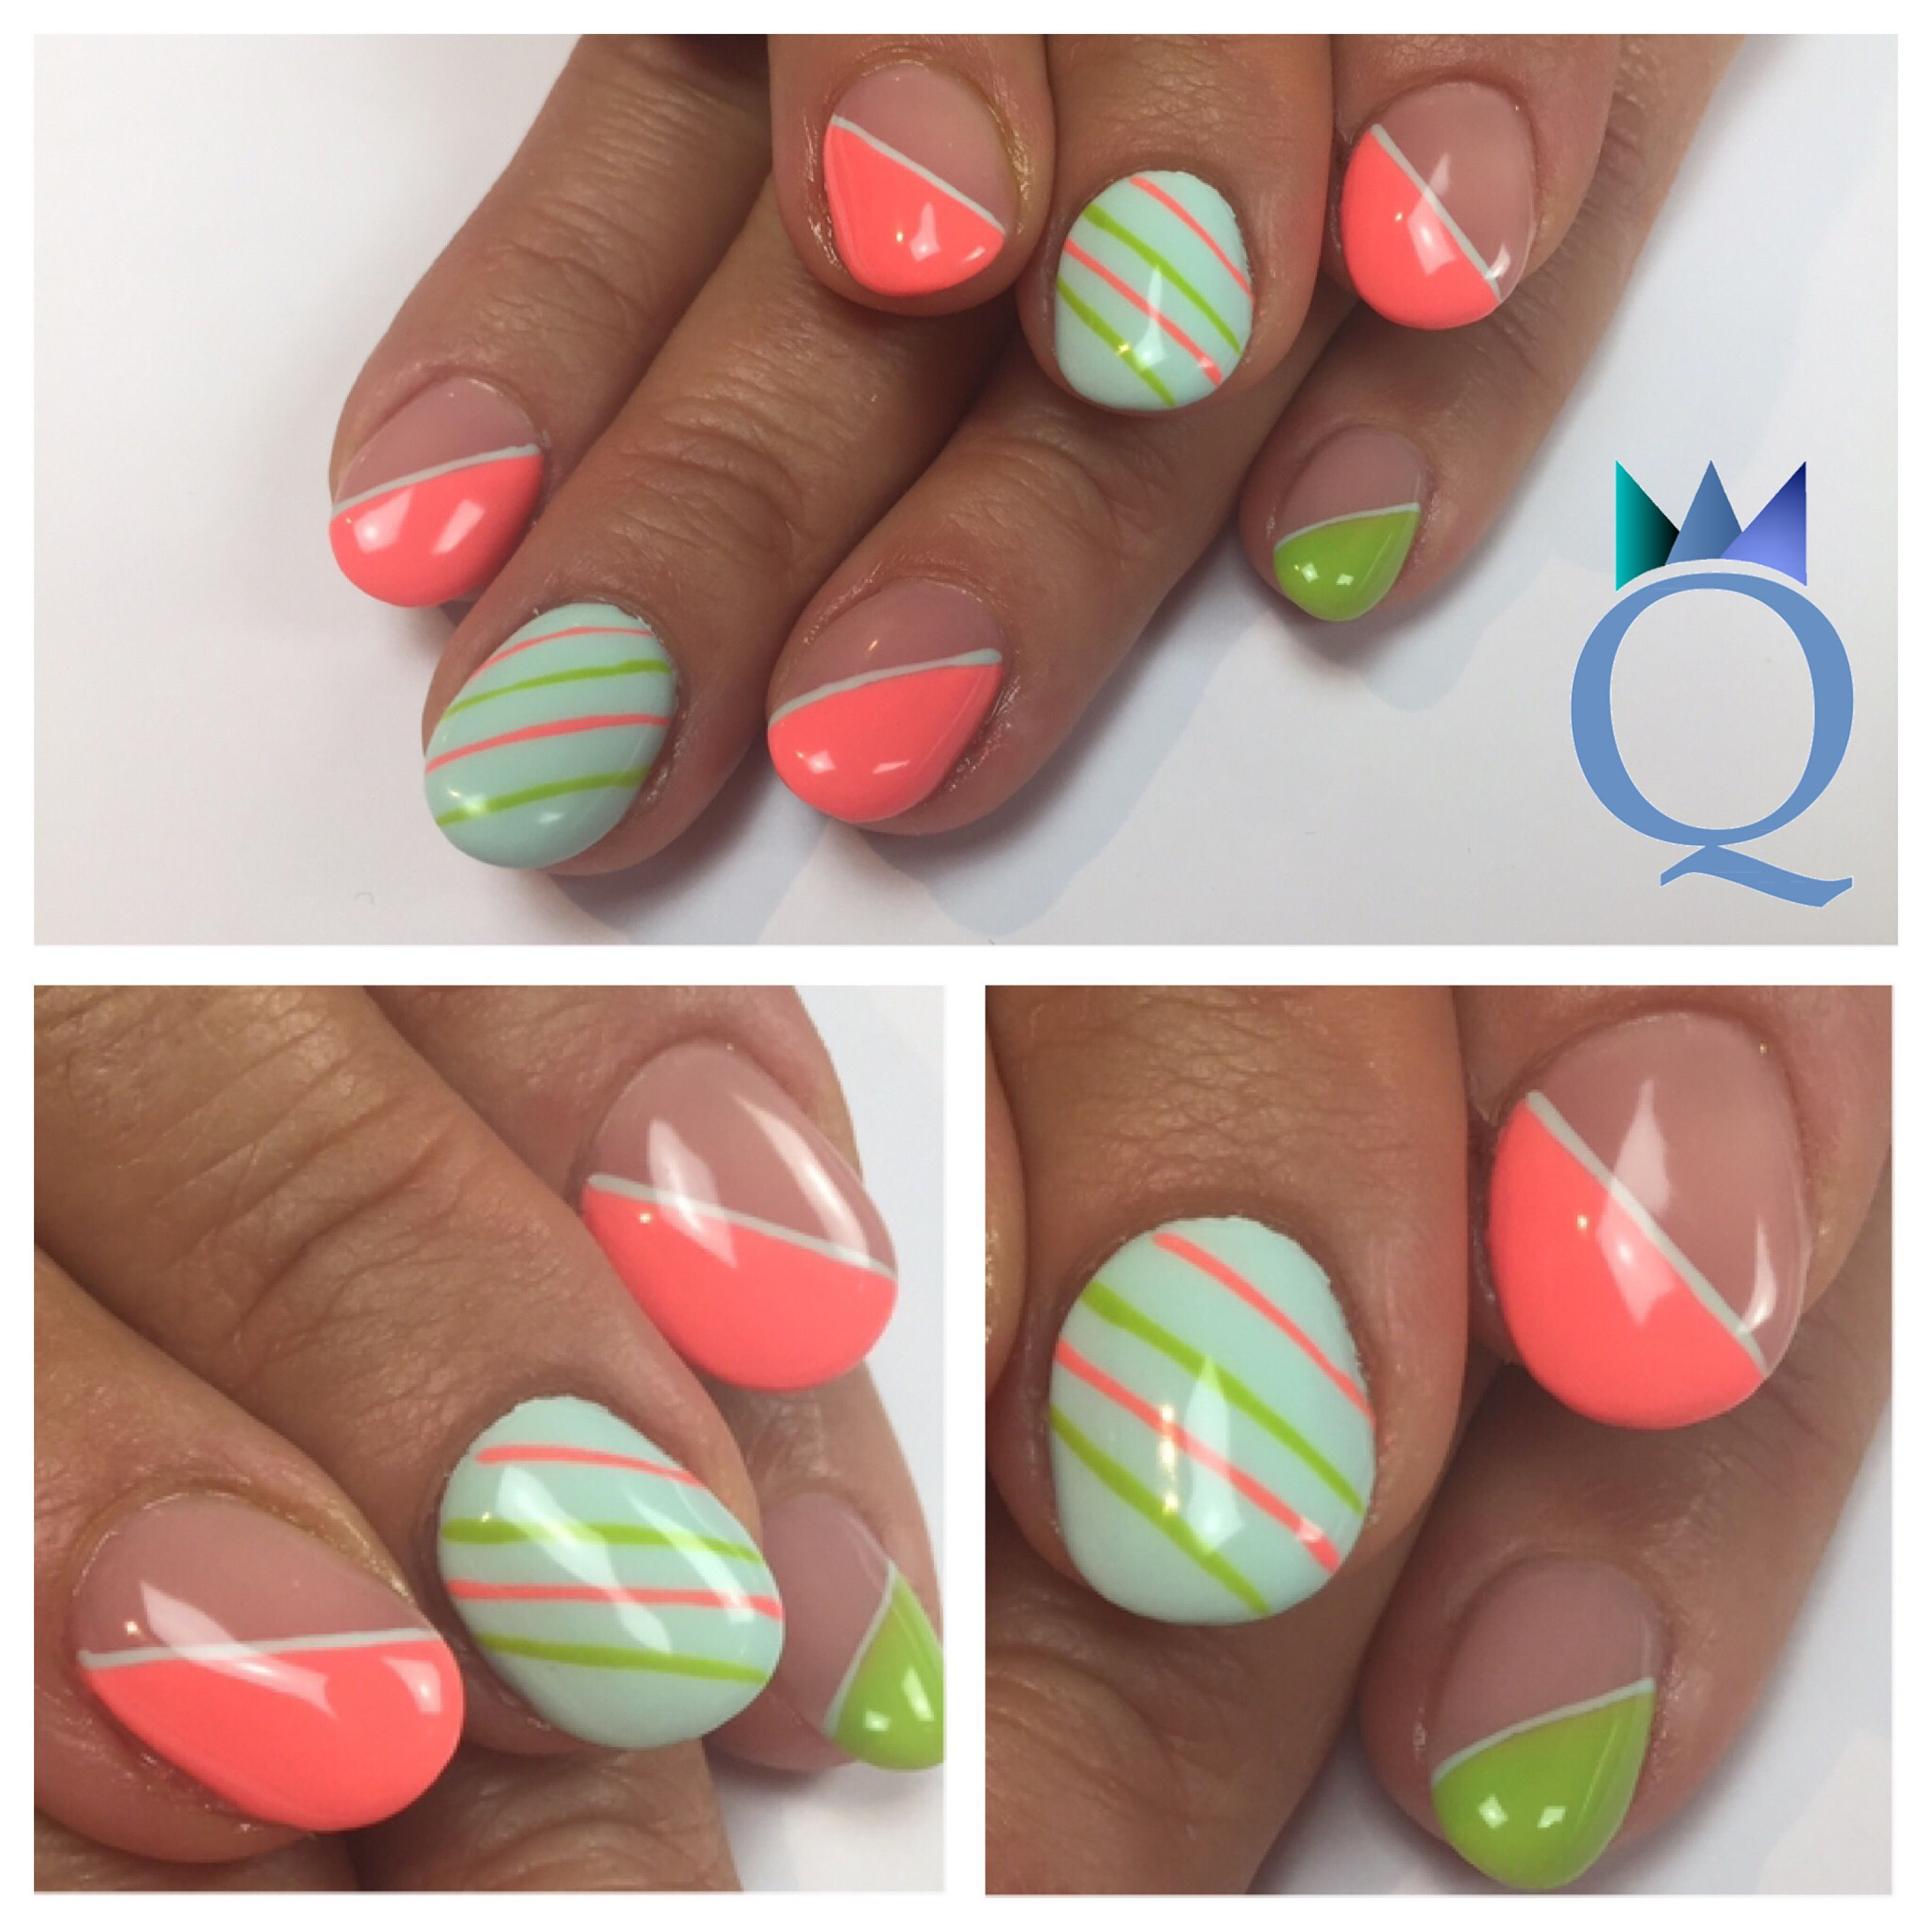 Shortnails Gelnails Nails Pinkcoral Lightblue Green Akyado